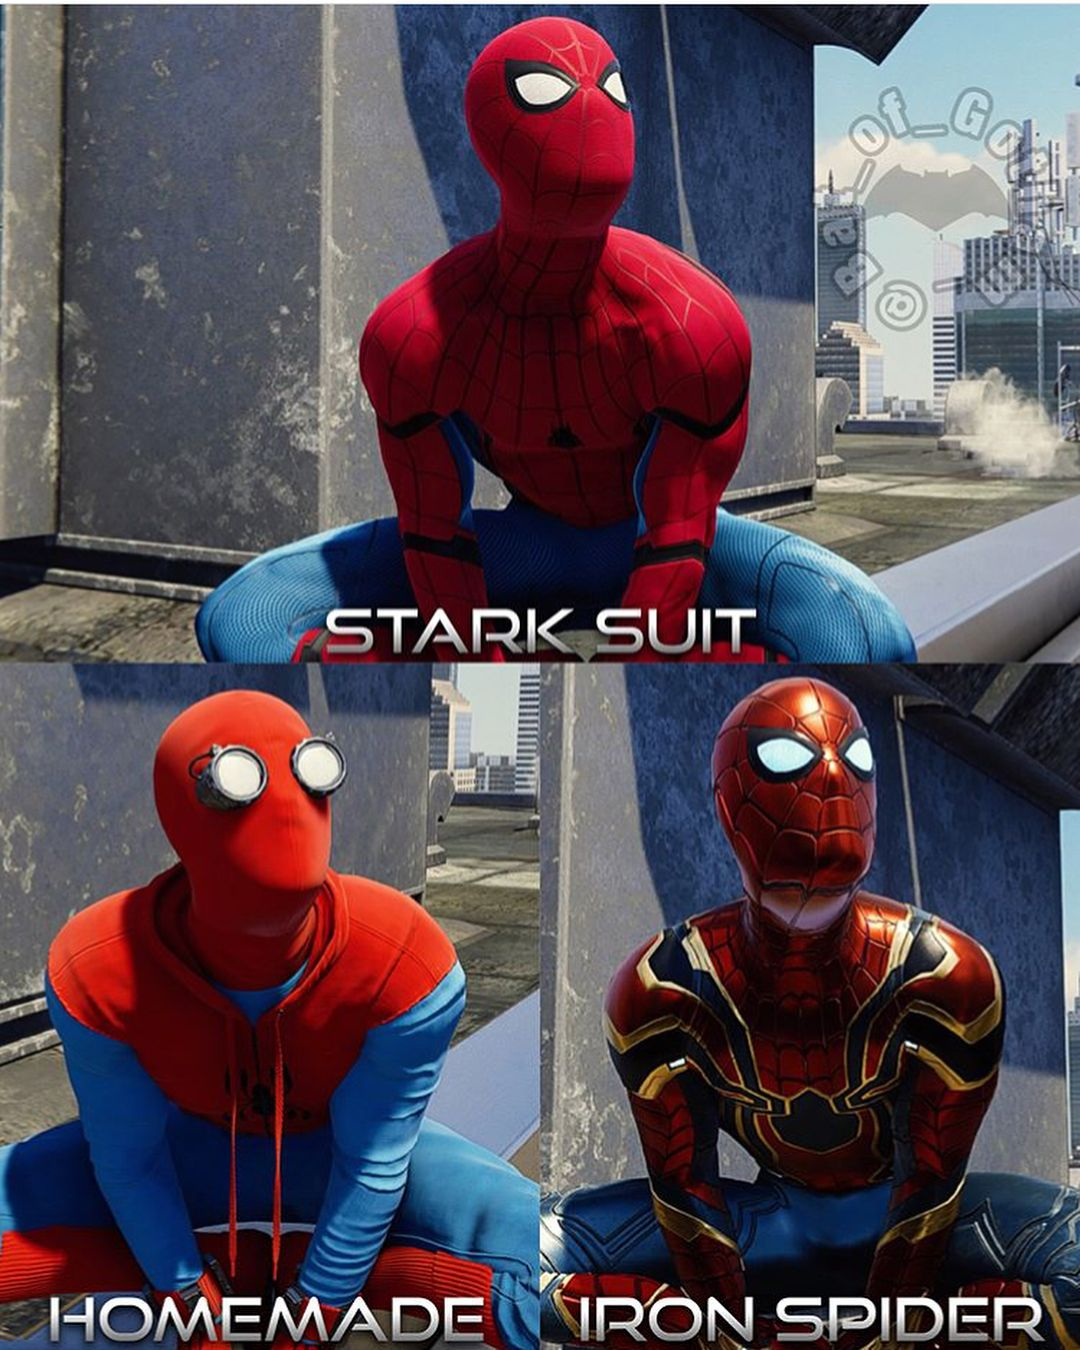 spider-man ps4 suit | marvel & dc | spiderman, marvel, spider